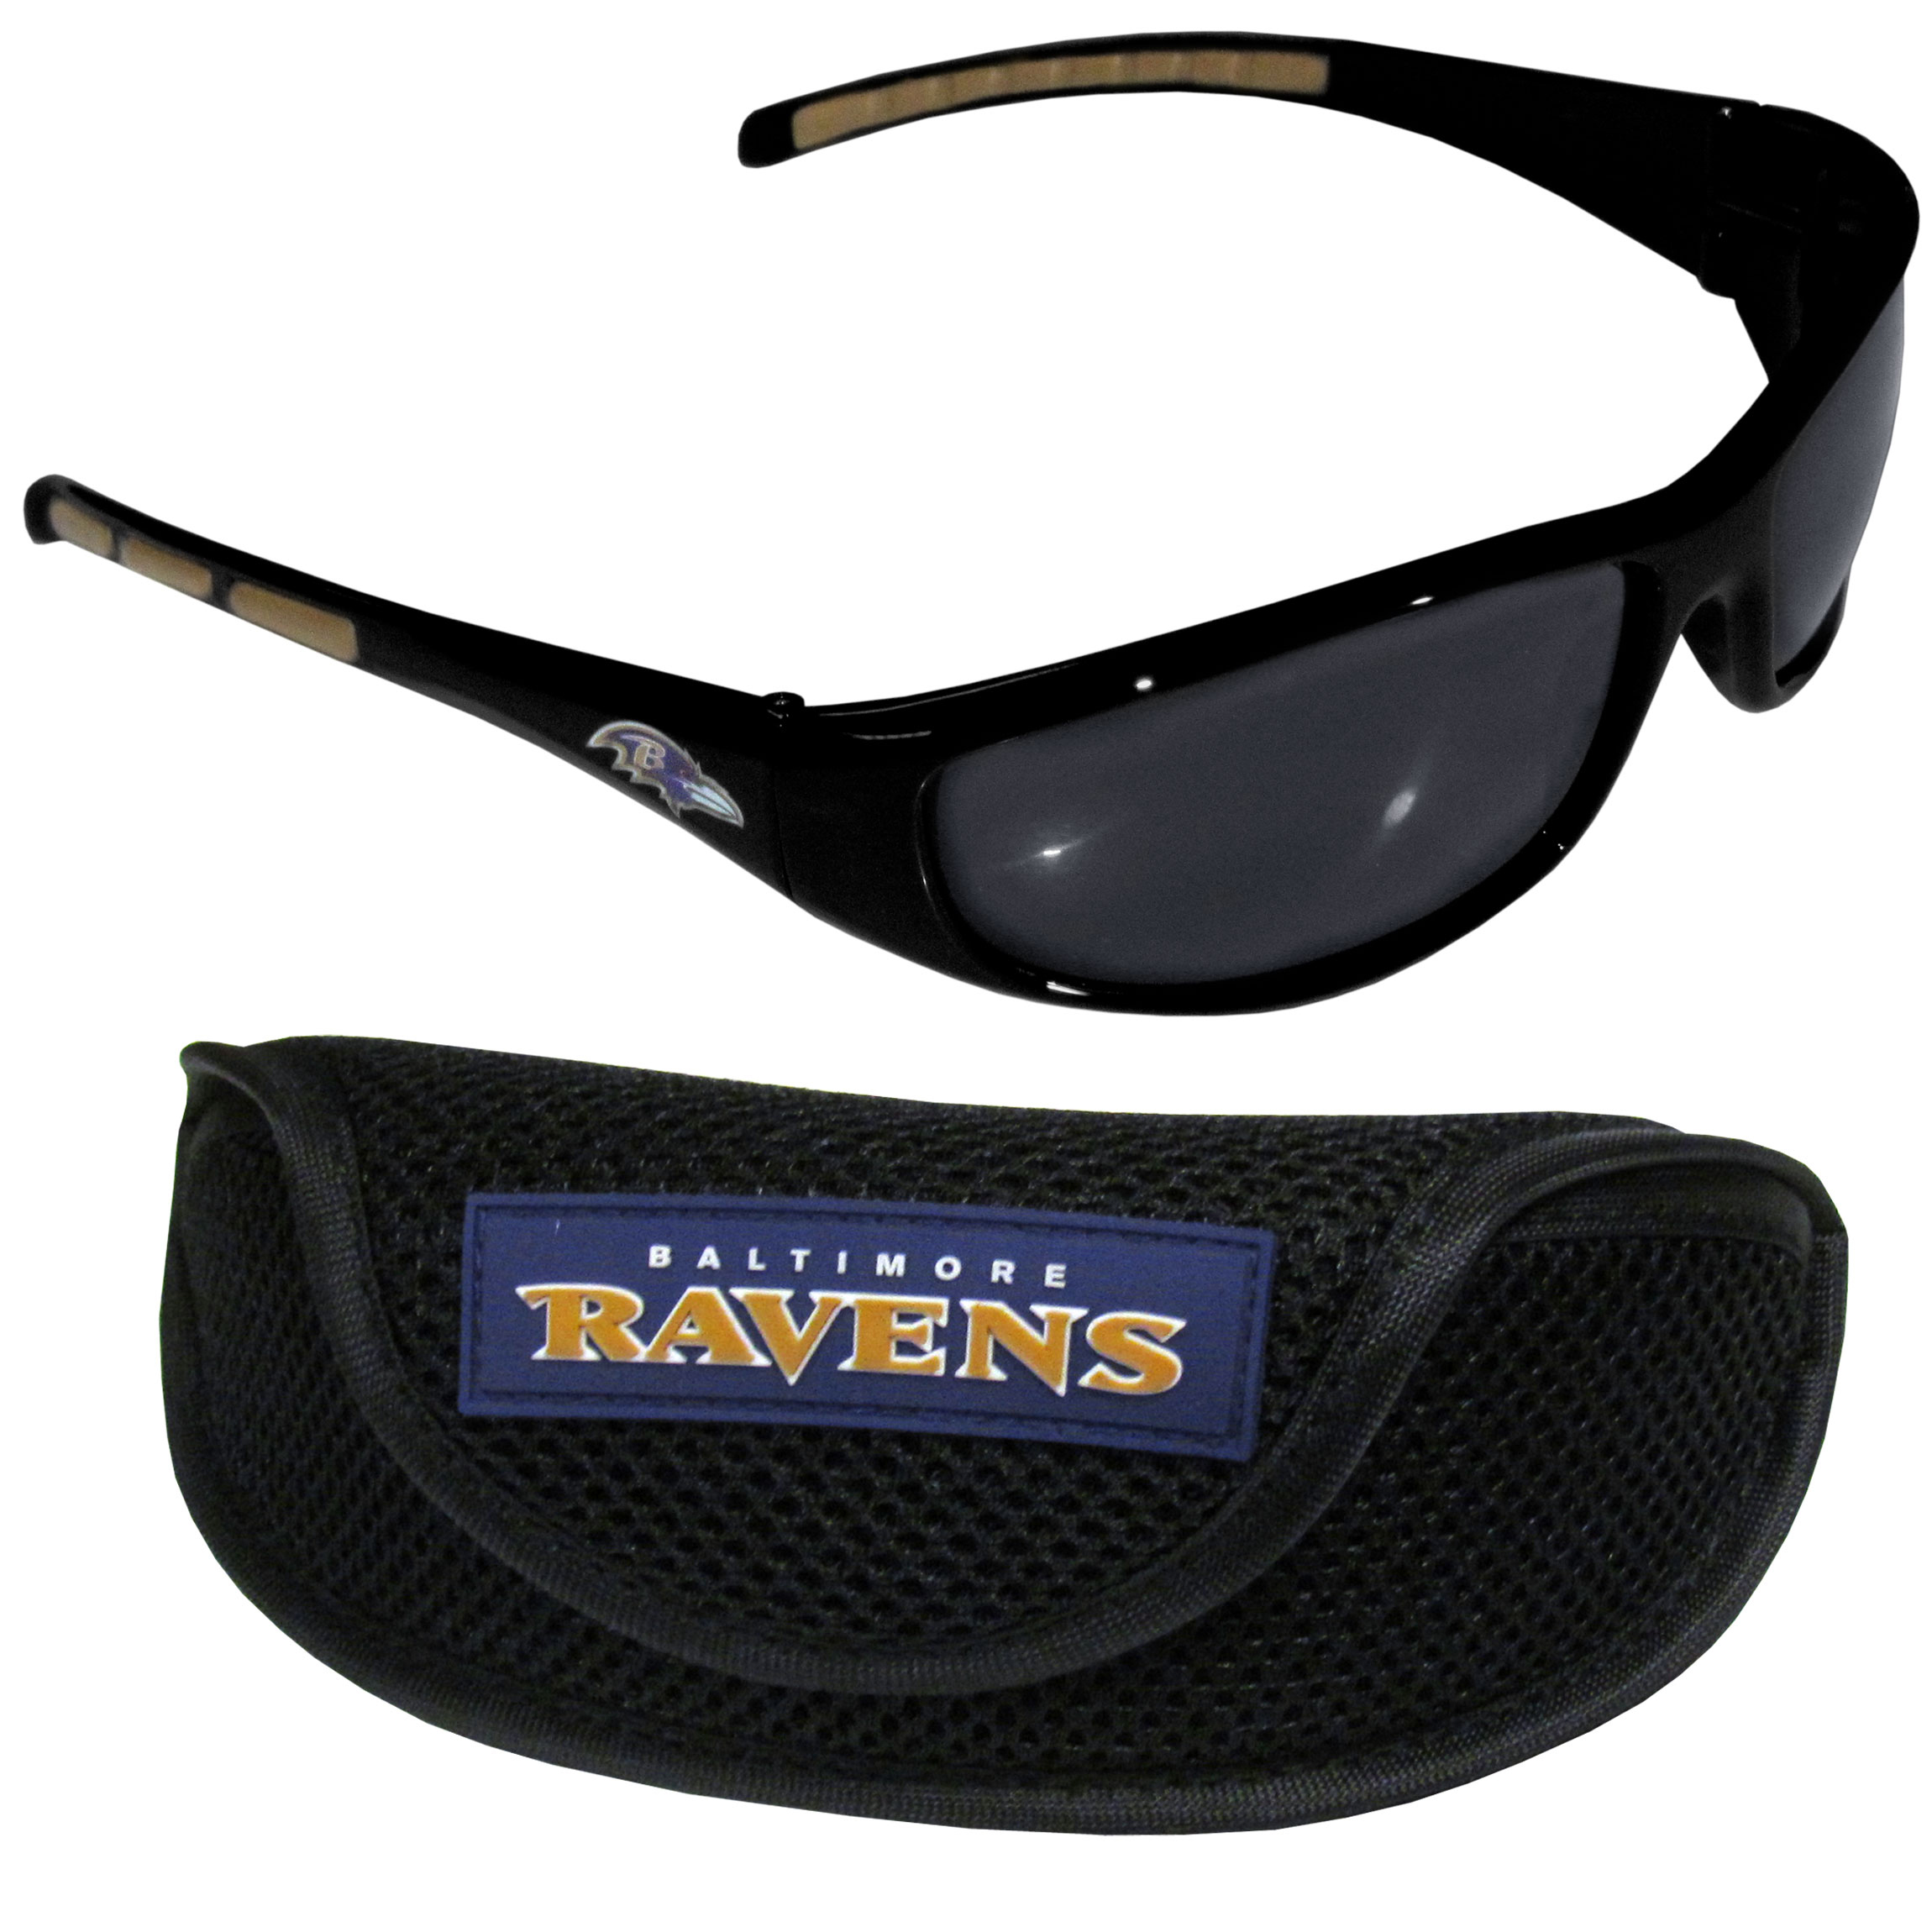 Baltimore Ravens Wrap Sunglass and Case Set - This great set includes a high quality pair of Baltimore Ravens wrap sunglasses and sport carrying case.